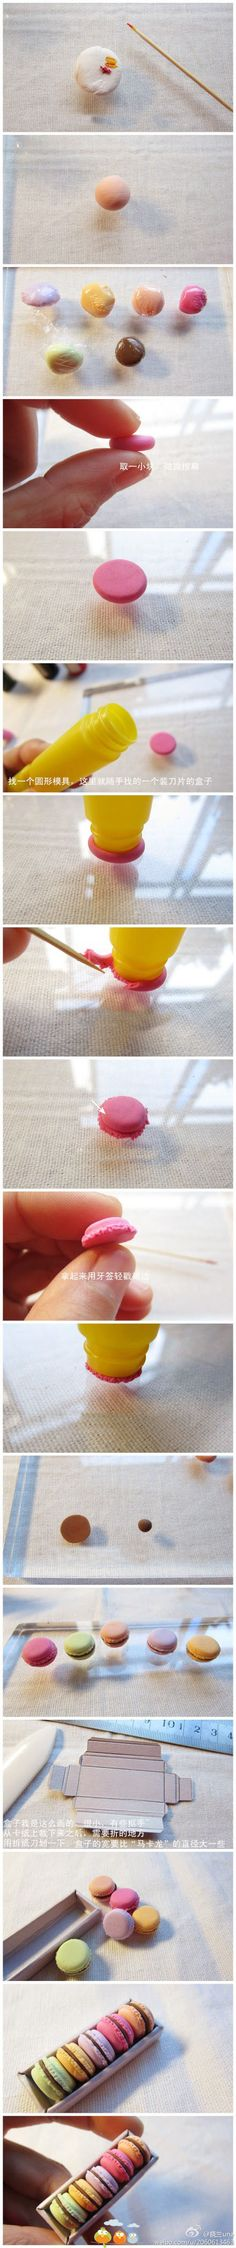 Mini macaroons of fimo poly clay! Polymer Clay Kunst, Polymer Clay Miniatures, Fimo Clay, Polymer Clay Projects, Polymer Clay Charms, Polymer Clay Creations, Clay Crafts, Crea Fimo, Cute Clay